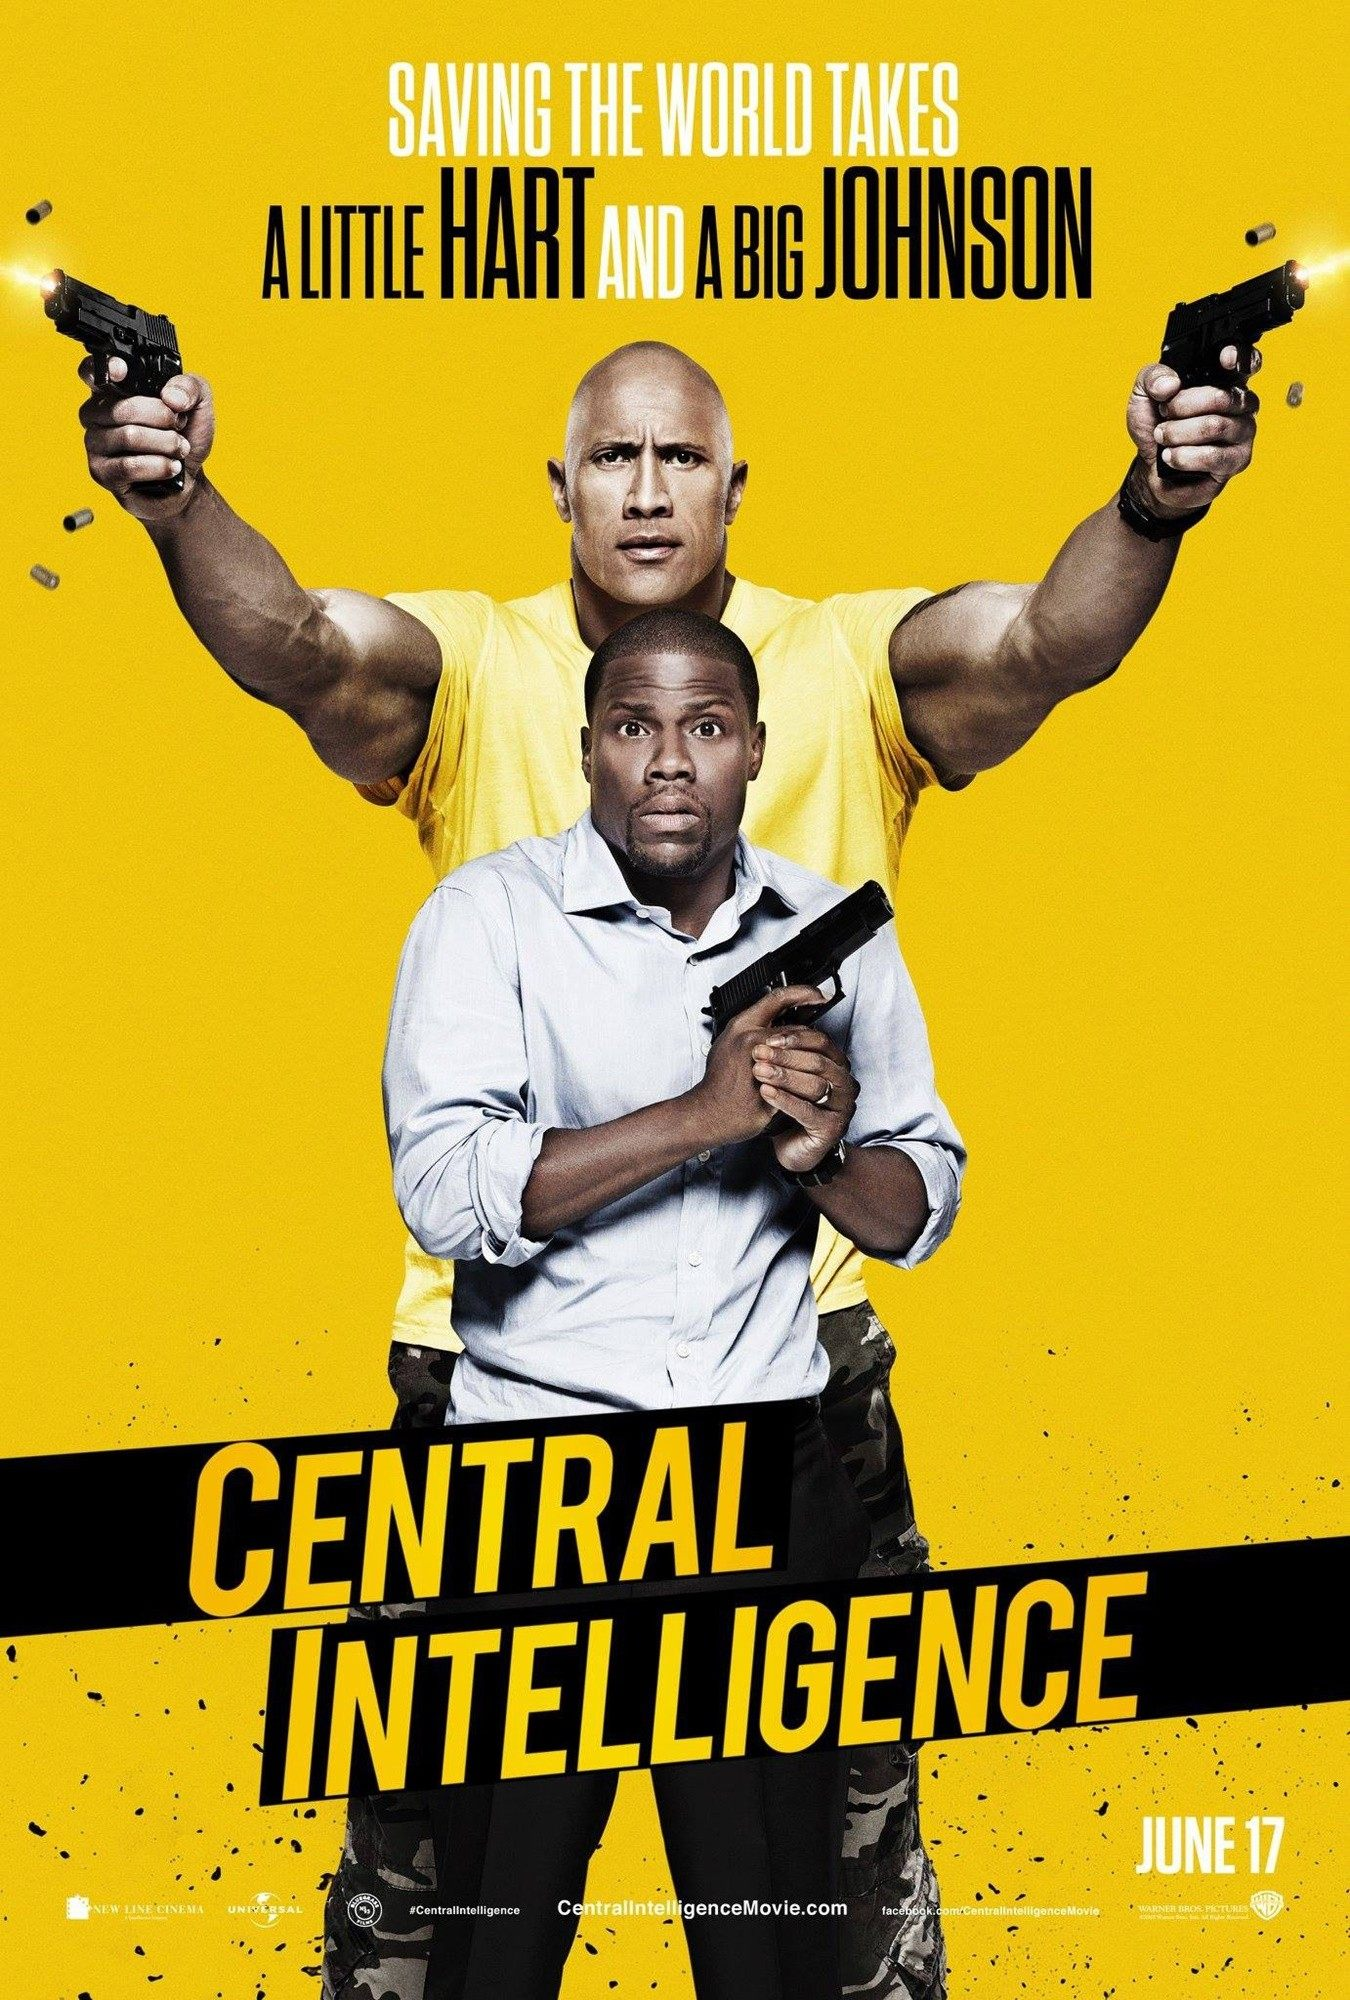 Central Intelligence Review: Less Hart = More Heart